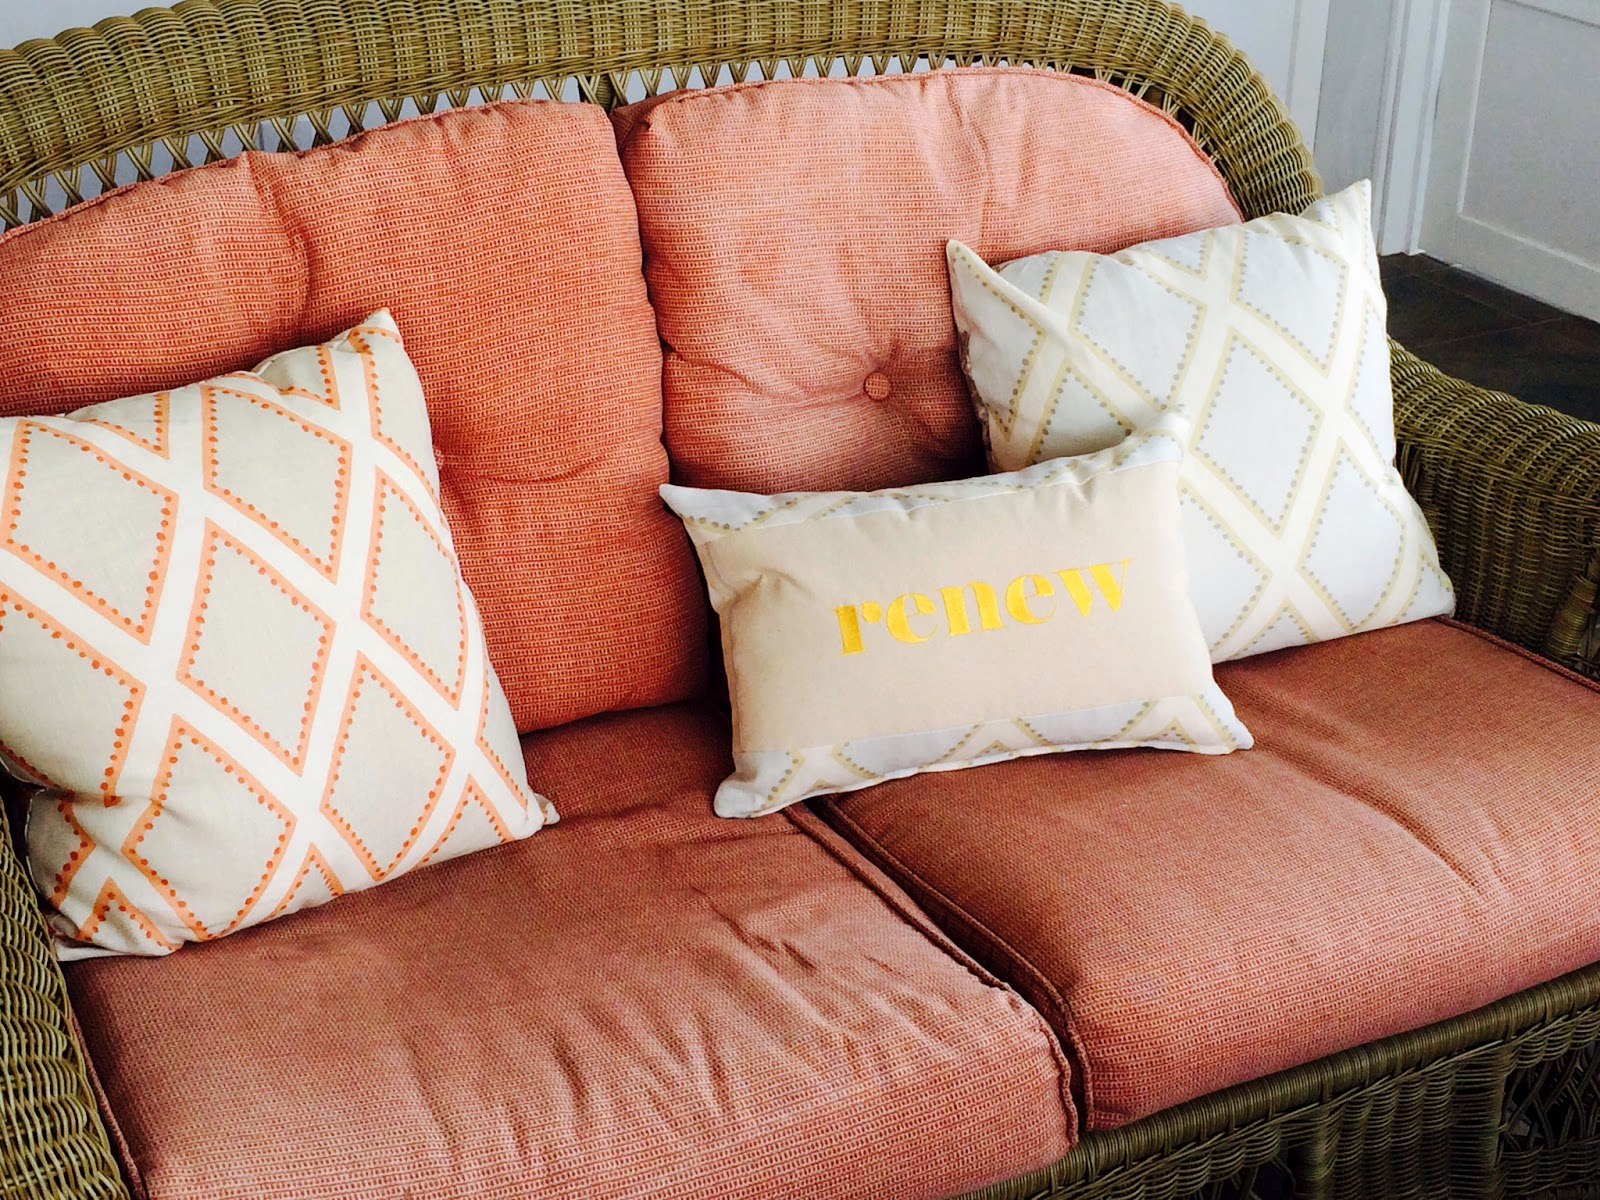 Renew Porch Message Pillow | Belinda Lee Designs | Personalized Pillows | Unify Mismatched Furniture